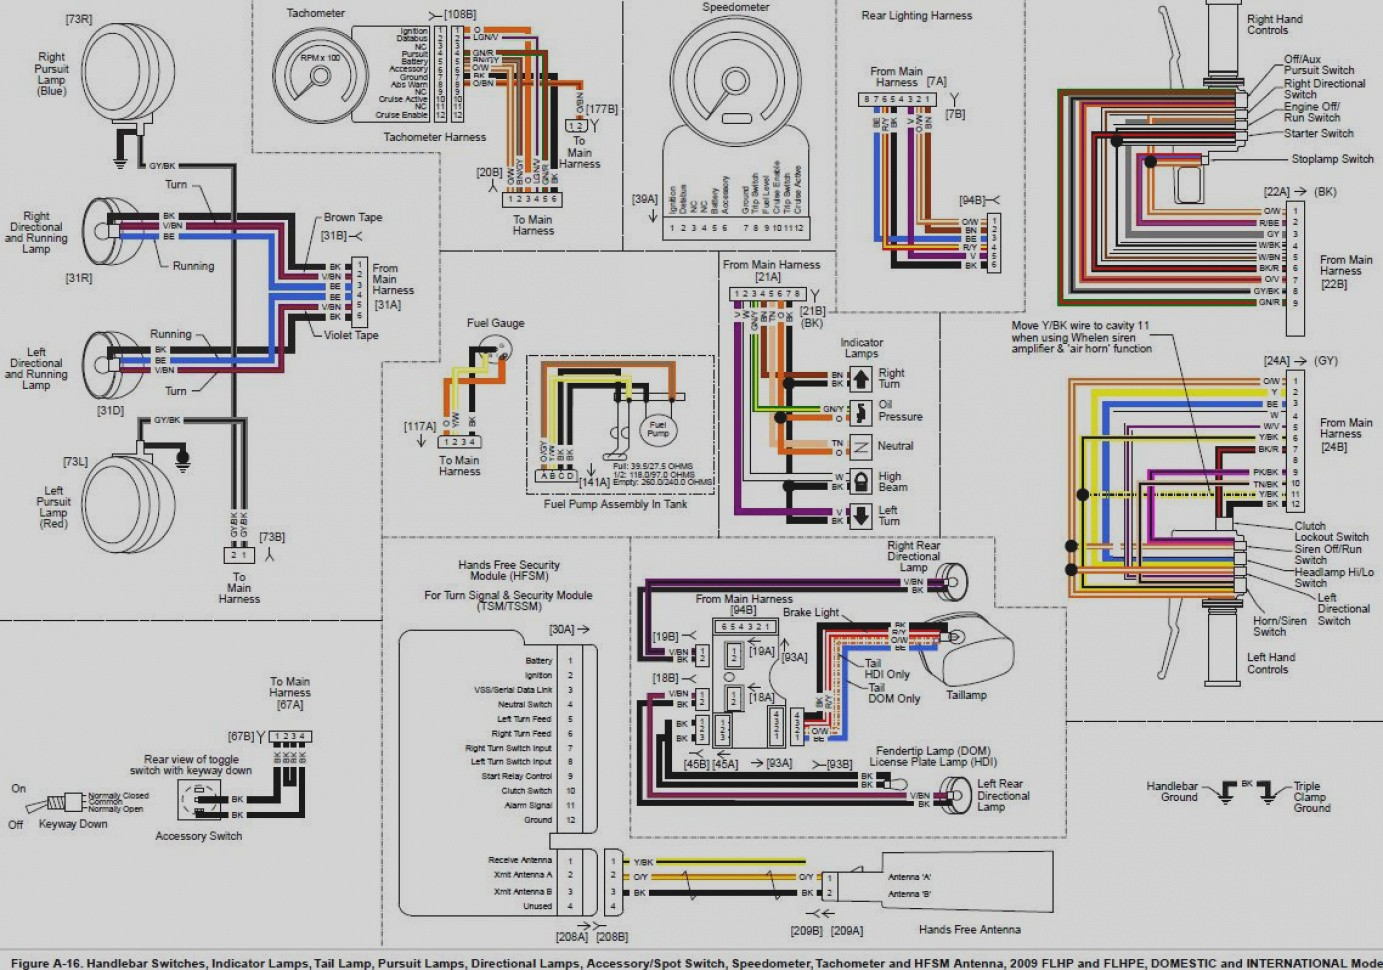 Harley Davidson Speaker Wiring Diagram Diagram Base Website Wiring Diagram  - SIMPLEHEARTDIAGRAM.FORTUNEBAND.FRsimpleheartdiagram.fortuneband.fr